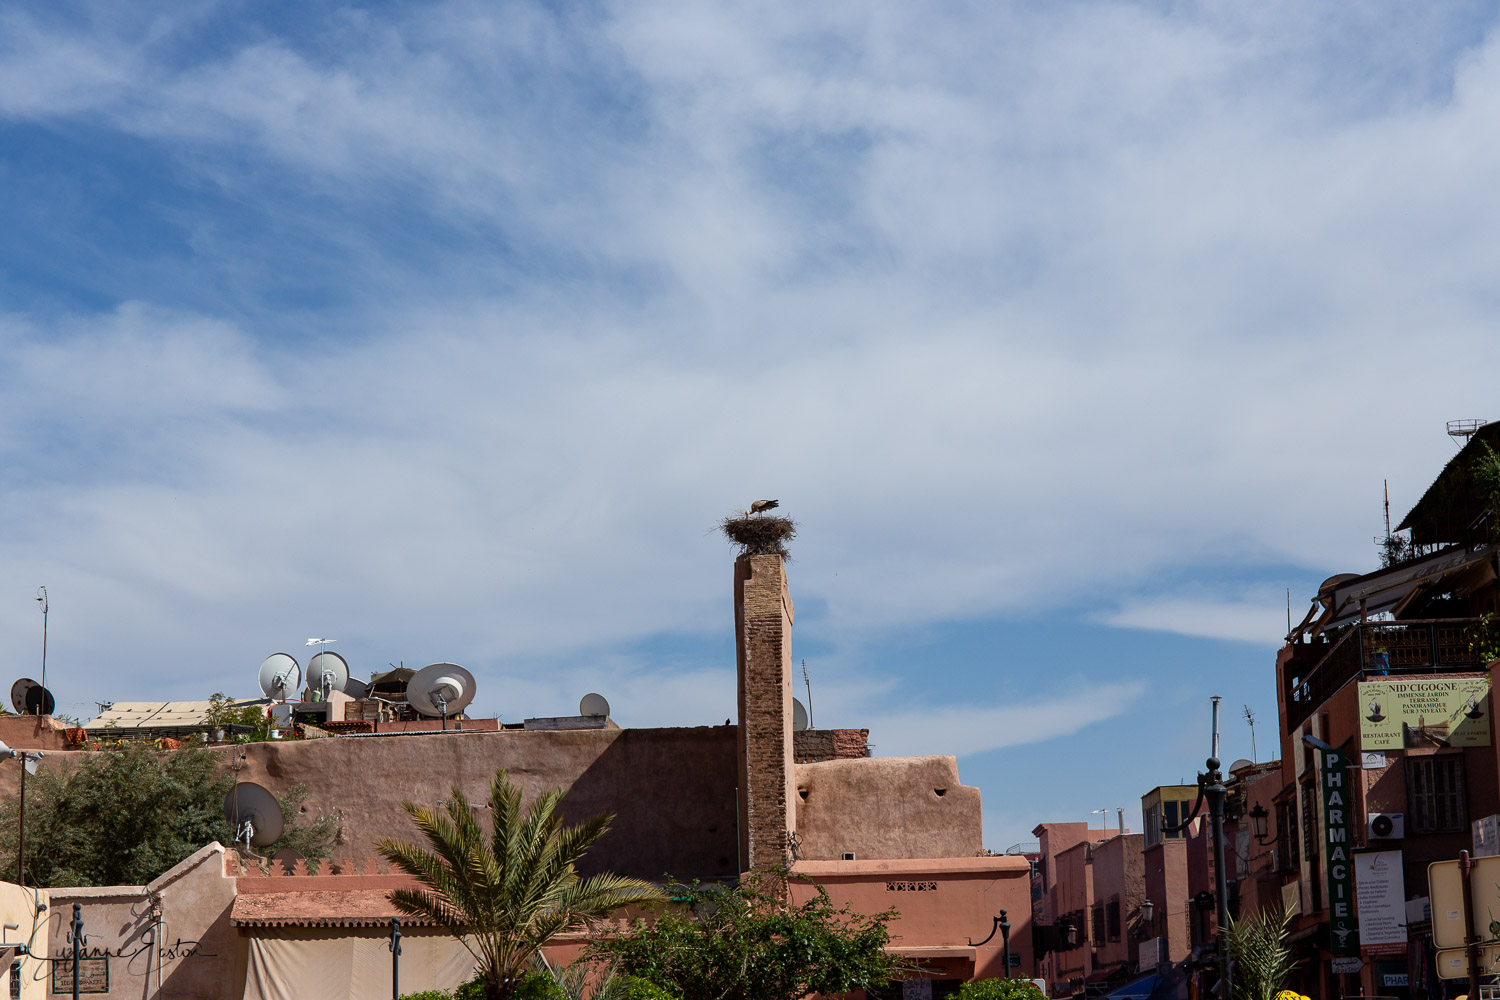 A stork makes its nest in the ruins of the Old Palace in the centre of Marrakech